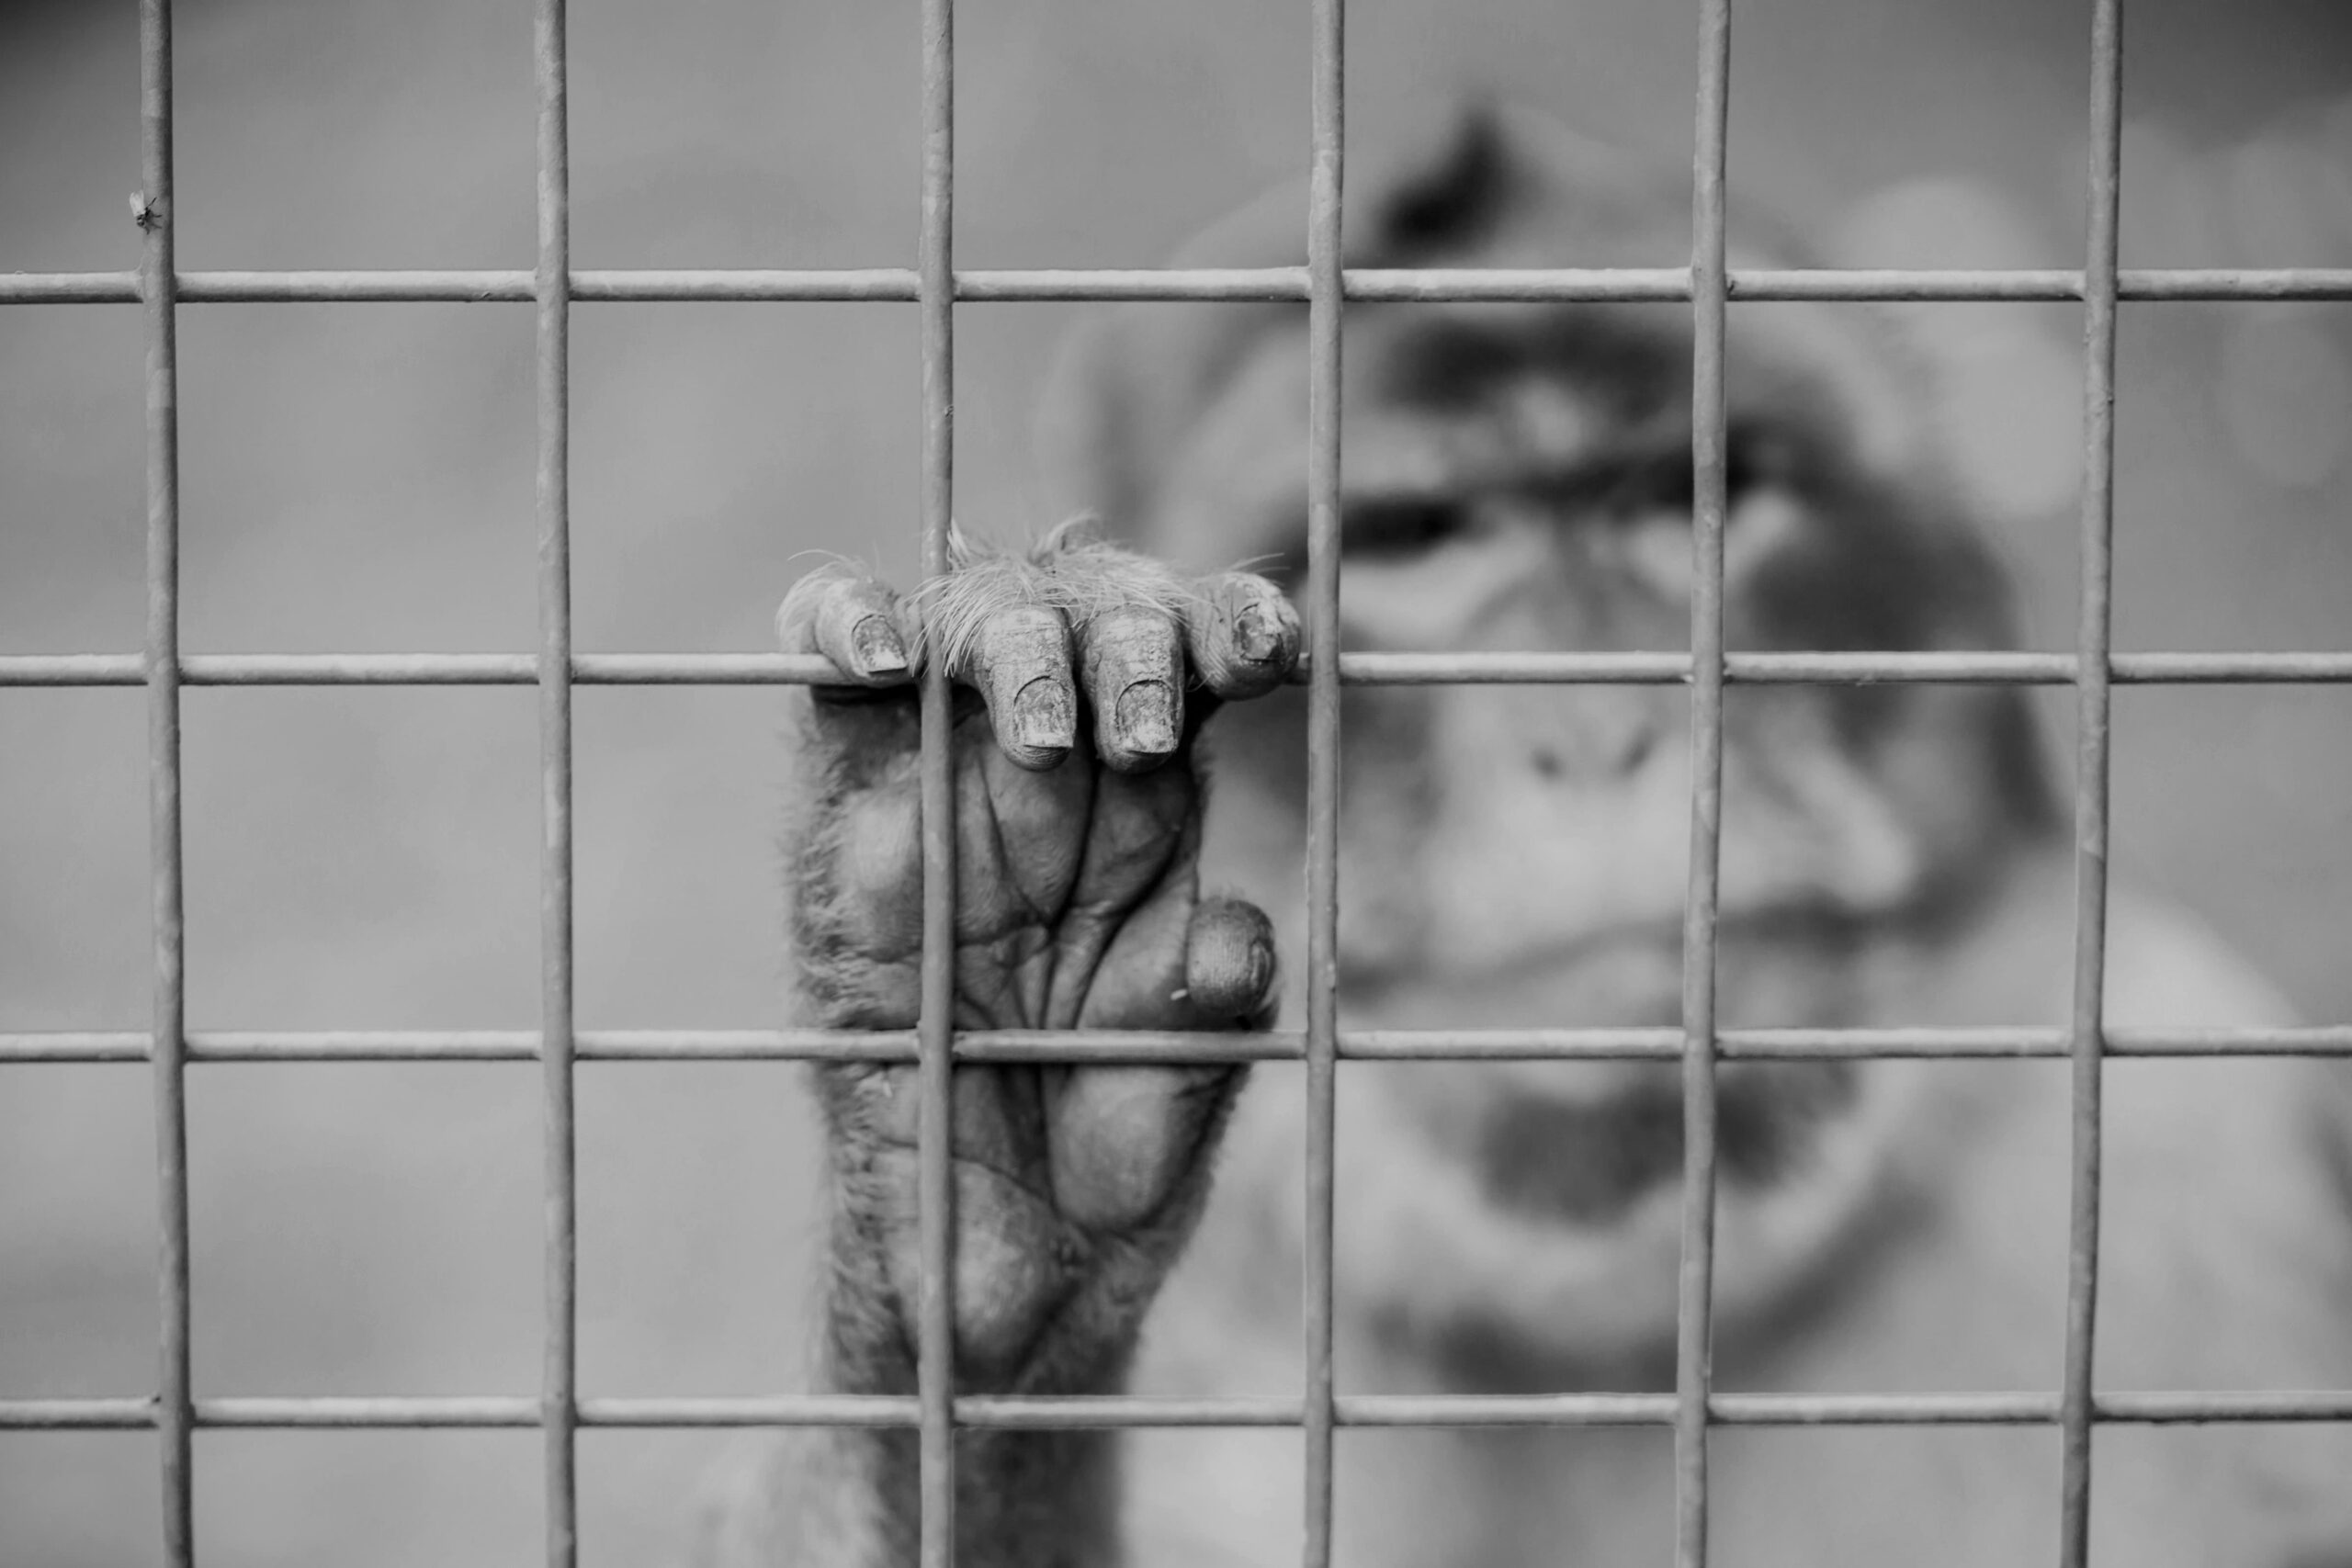 Black and white image focused on a monkey's hand